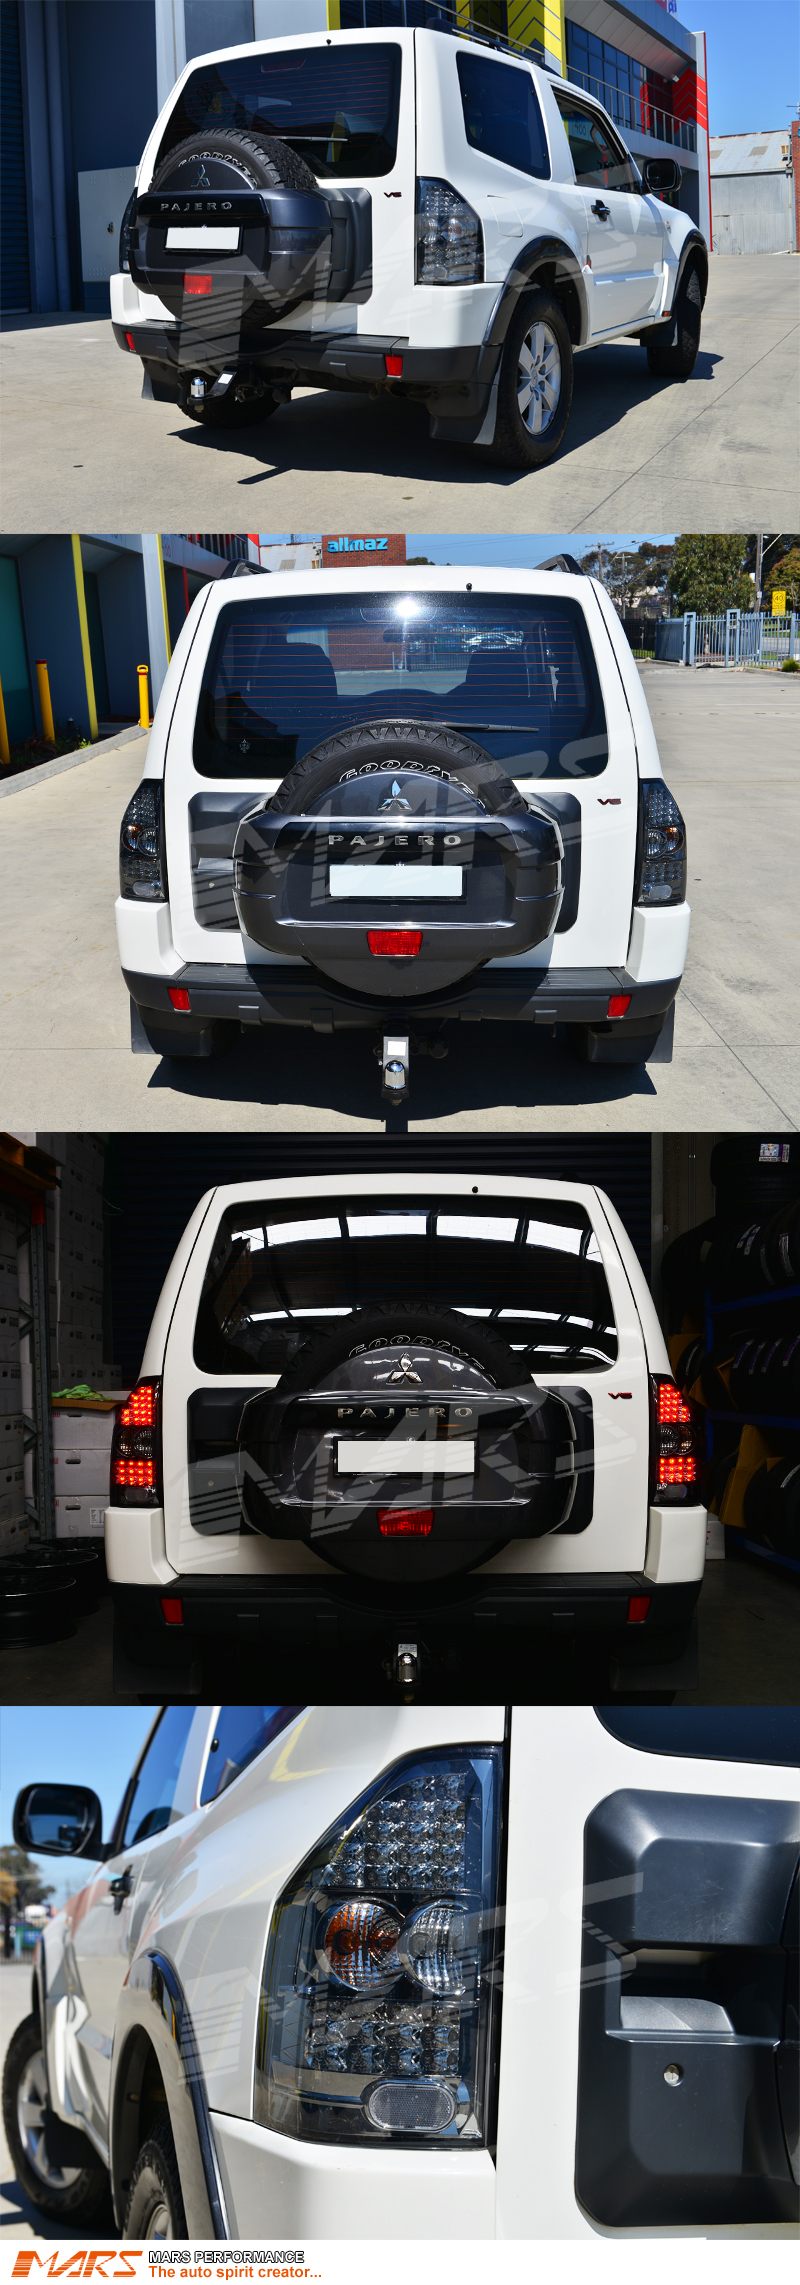 Smoked Black Led Tail Lights For Mitsubishi Pajero Nm Np 00 06 2001 Montero Wiring Harness Using Your Factory Supplied Connector Will Avoid Cutting Or Modifying Any Wires